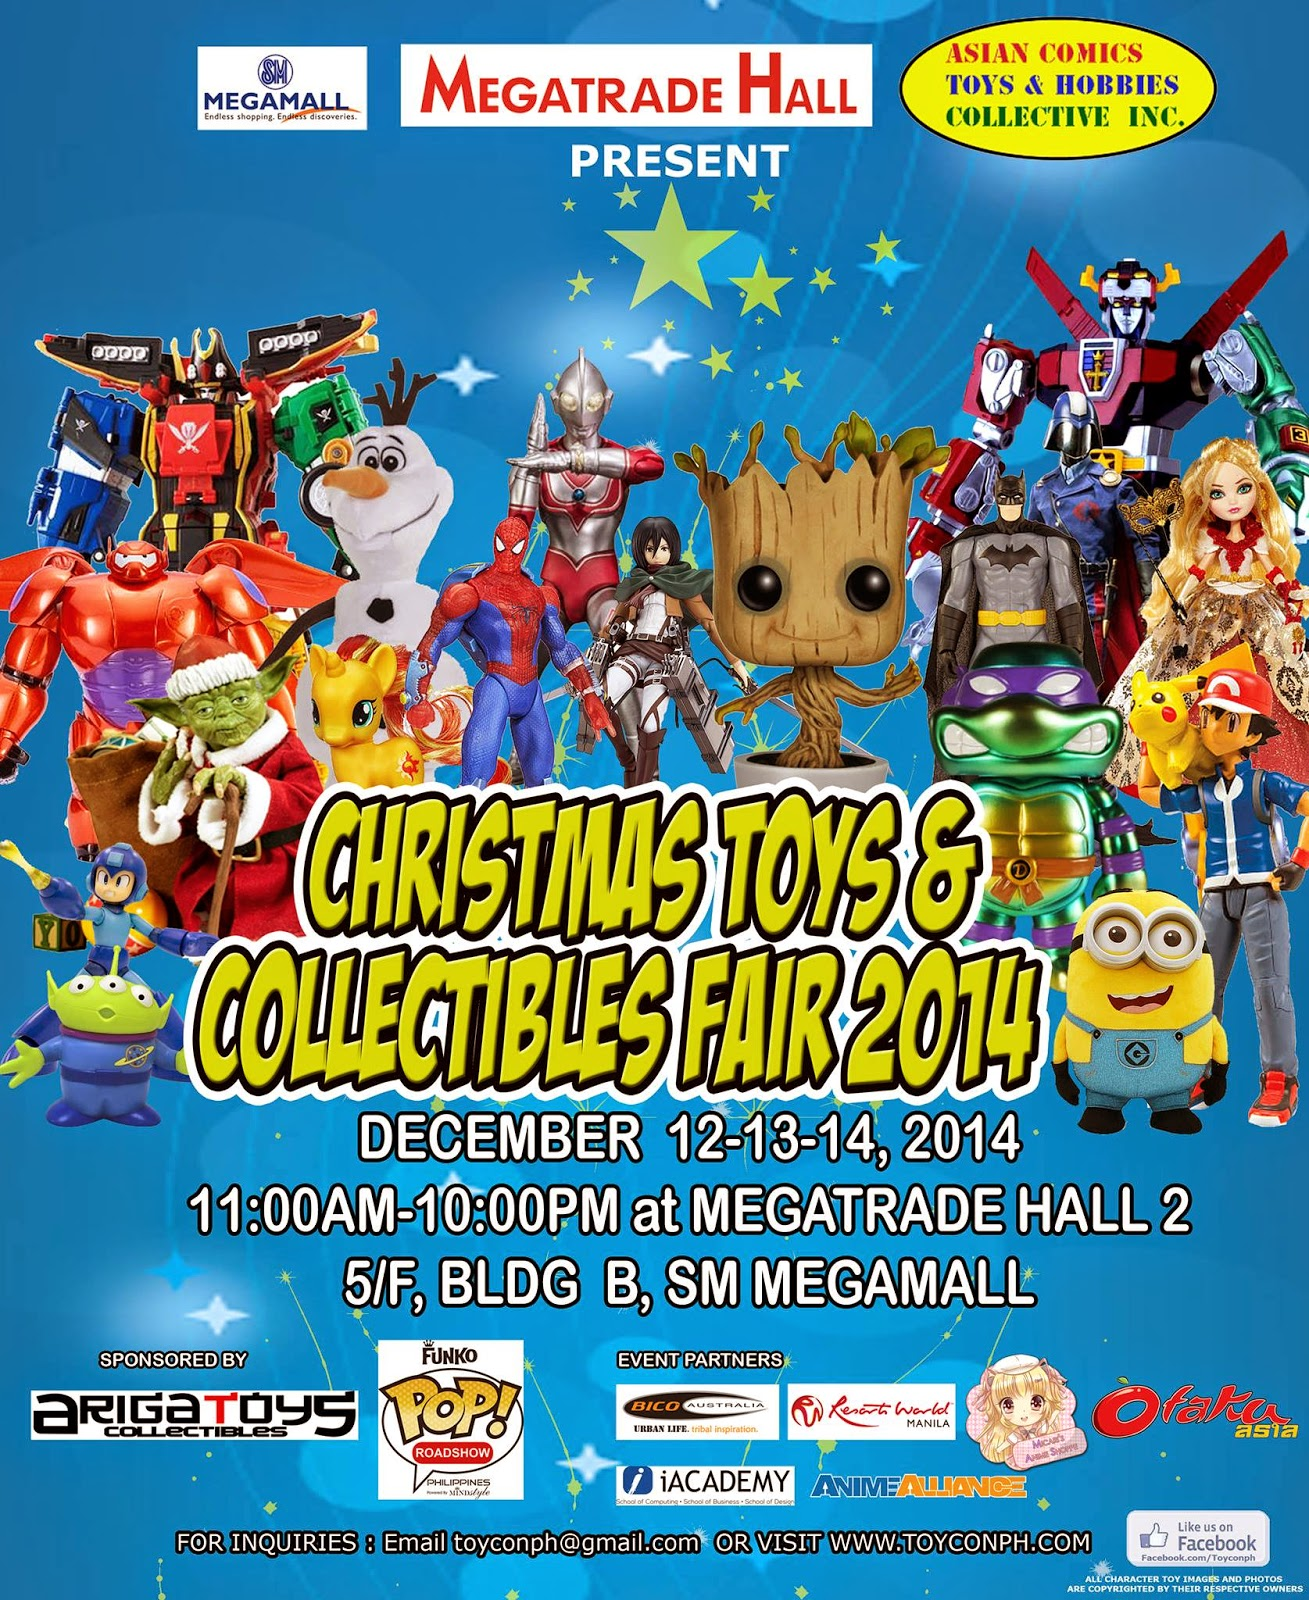 Christmas Toy and Collectibles Fair 2014 official event poster